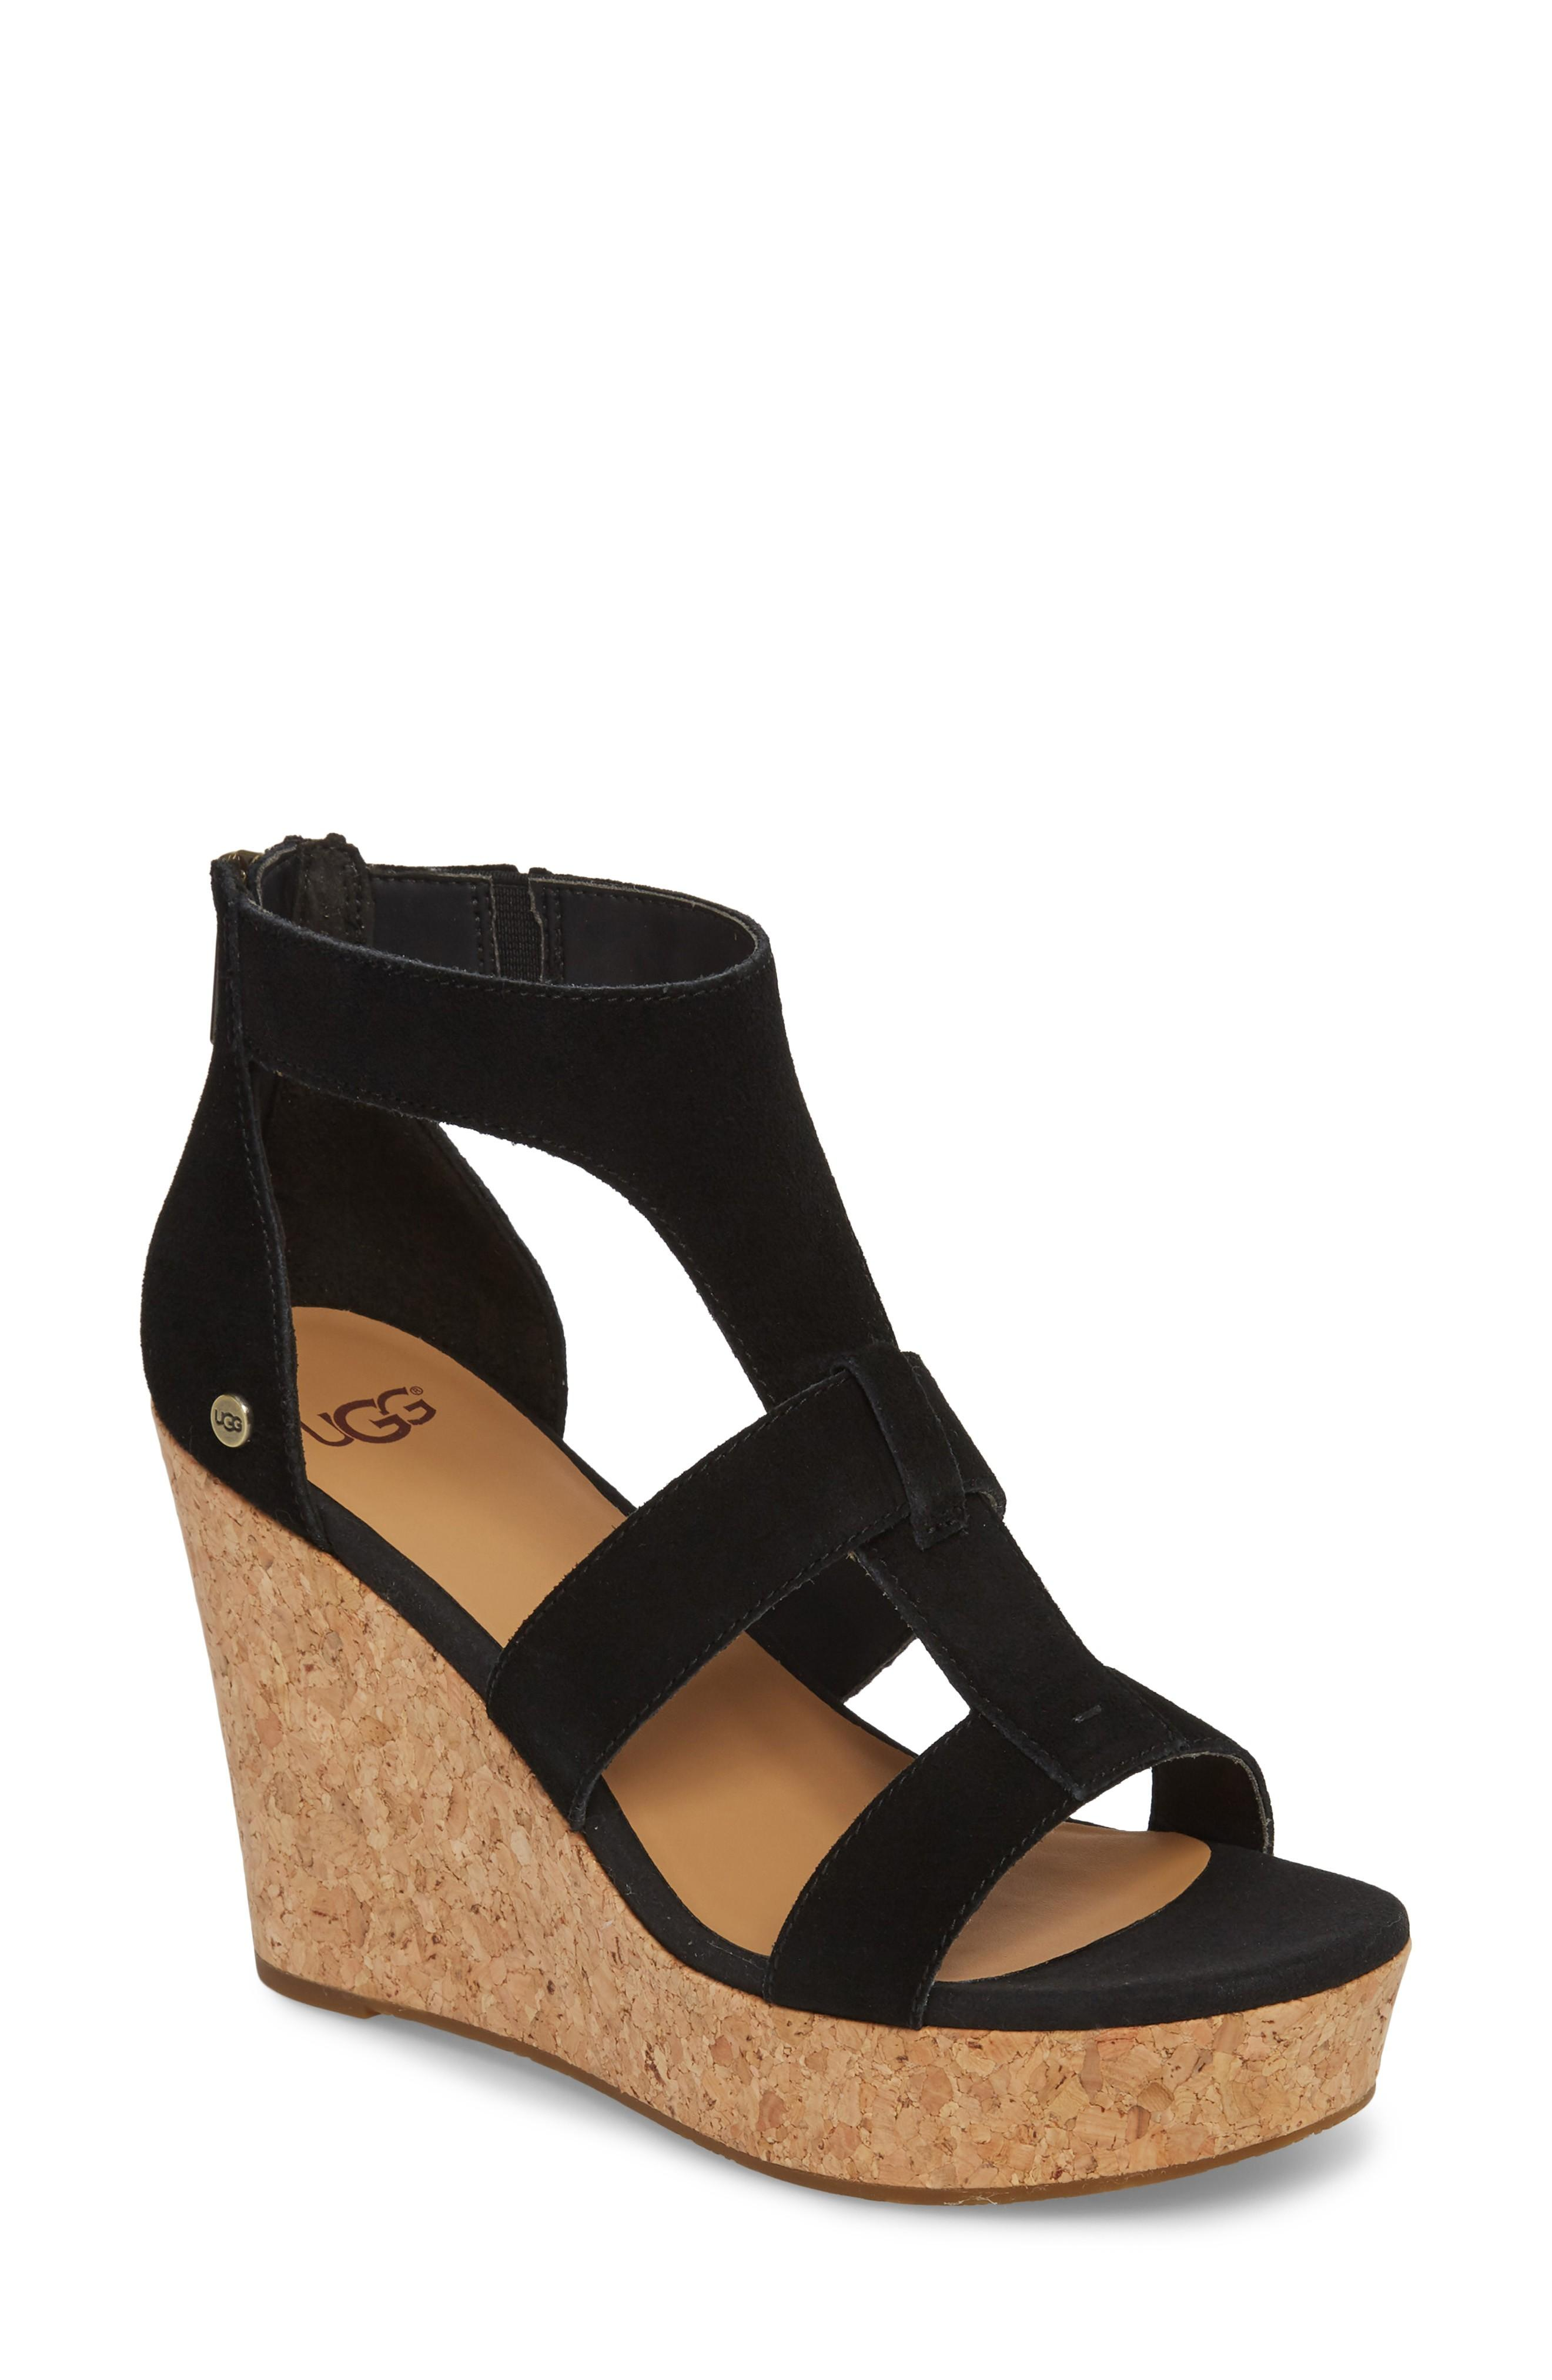 3bfa6c1d9c0 Take your casual-chic style to the next level with a strappy sandal set on  a lofty